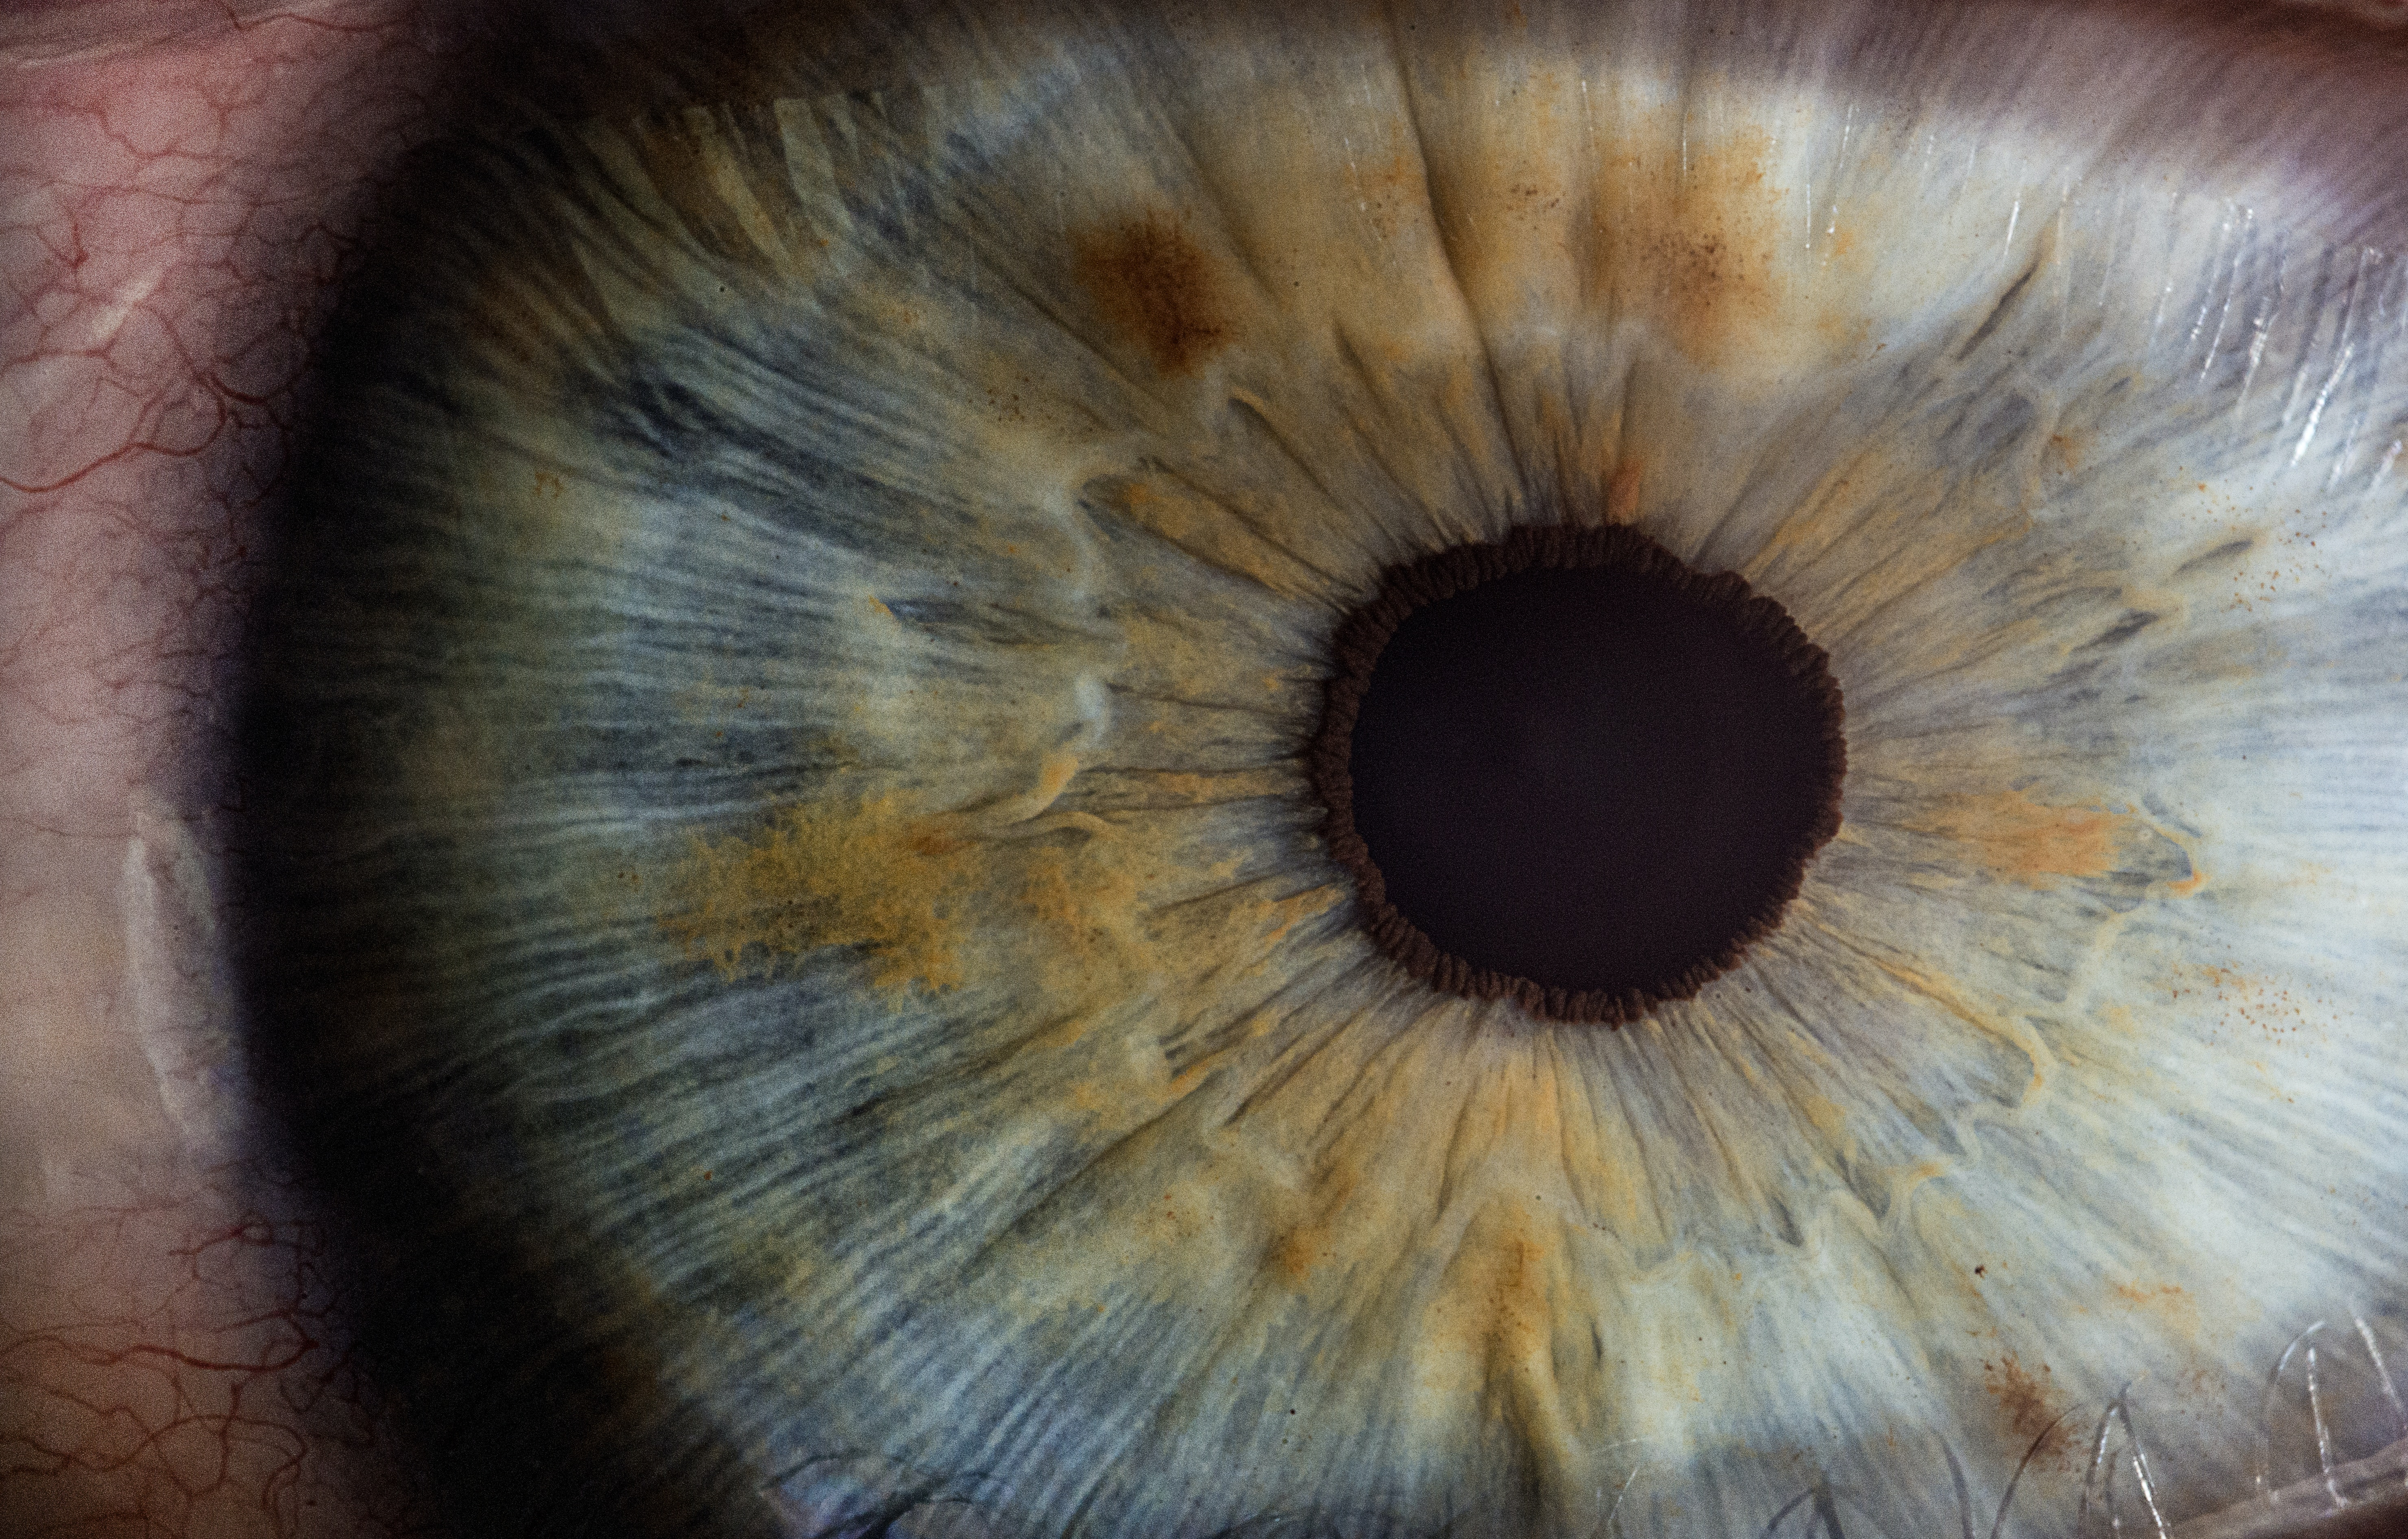 2 Million Cases of Blindness Traced Back to a Handful of Eye Disease Genes